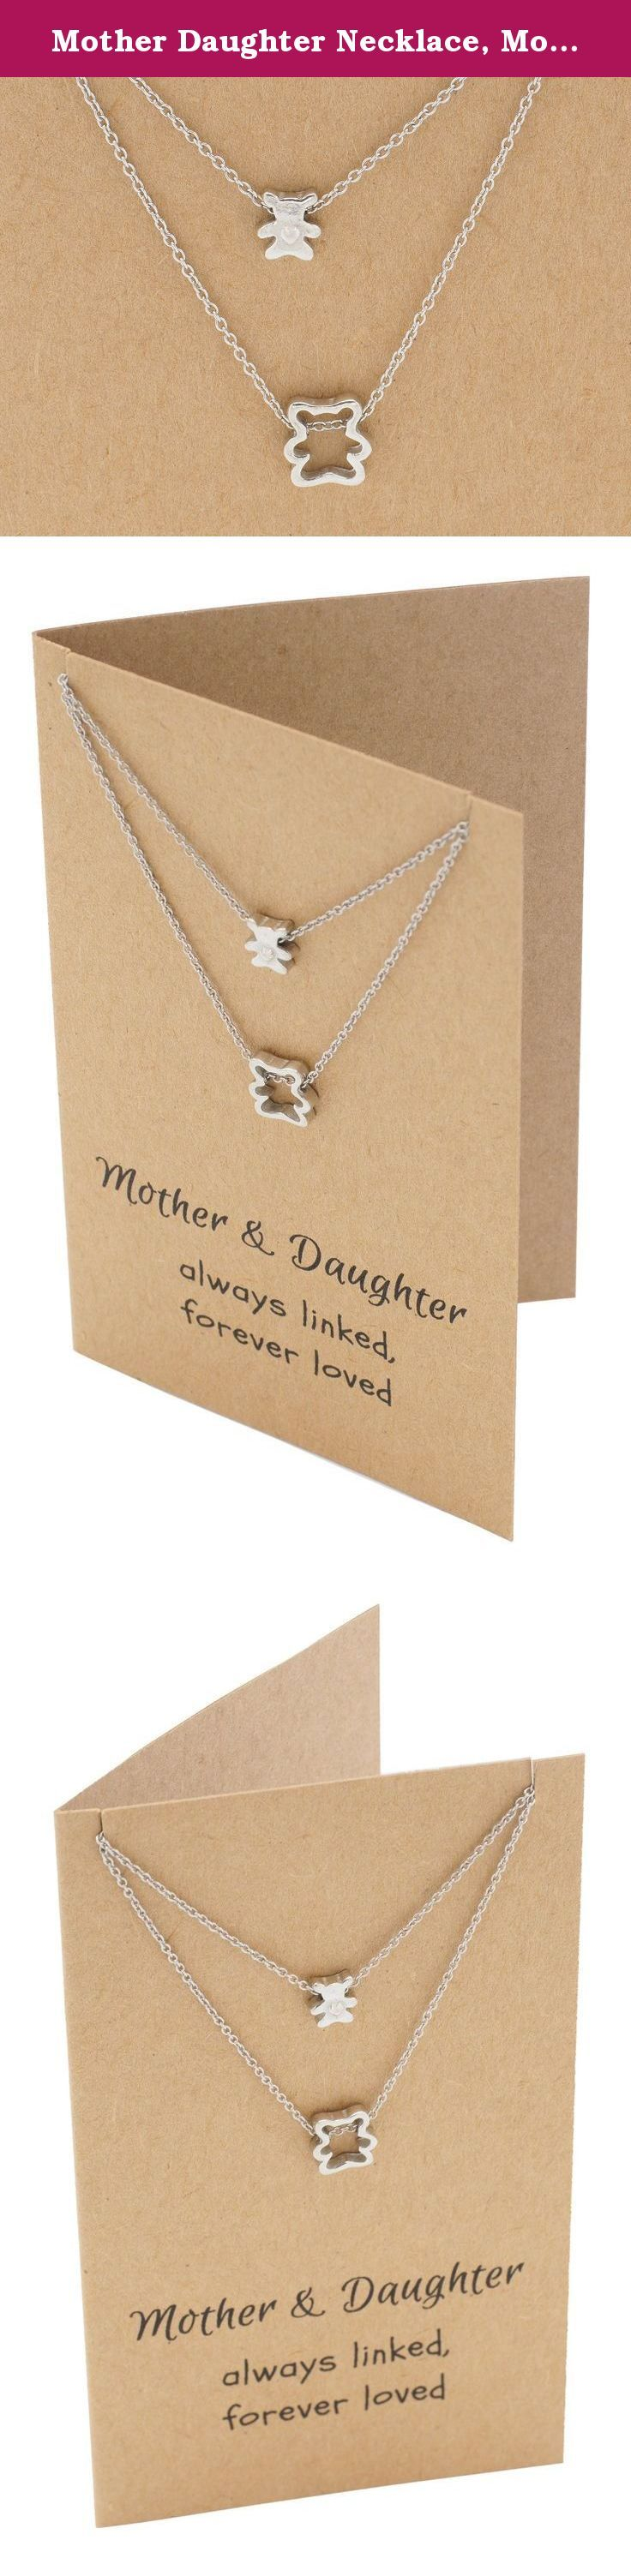 Mother Daughter Necklace, Momma Bear and Baby Bear Pendants, with Greeting Card, 16-in to 18-in. If you are searching for granddaughter gifts, gifts for daughter, mother daughter jewelry, mother to daughter gifts, mother daughter set, here is the perfect ready-made mother daughter jewelry necklace gift set. The package includes a totally cute teddy bear necklace for mom and one for daughter.